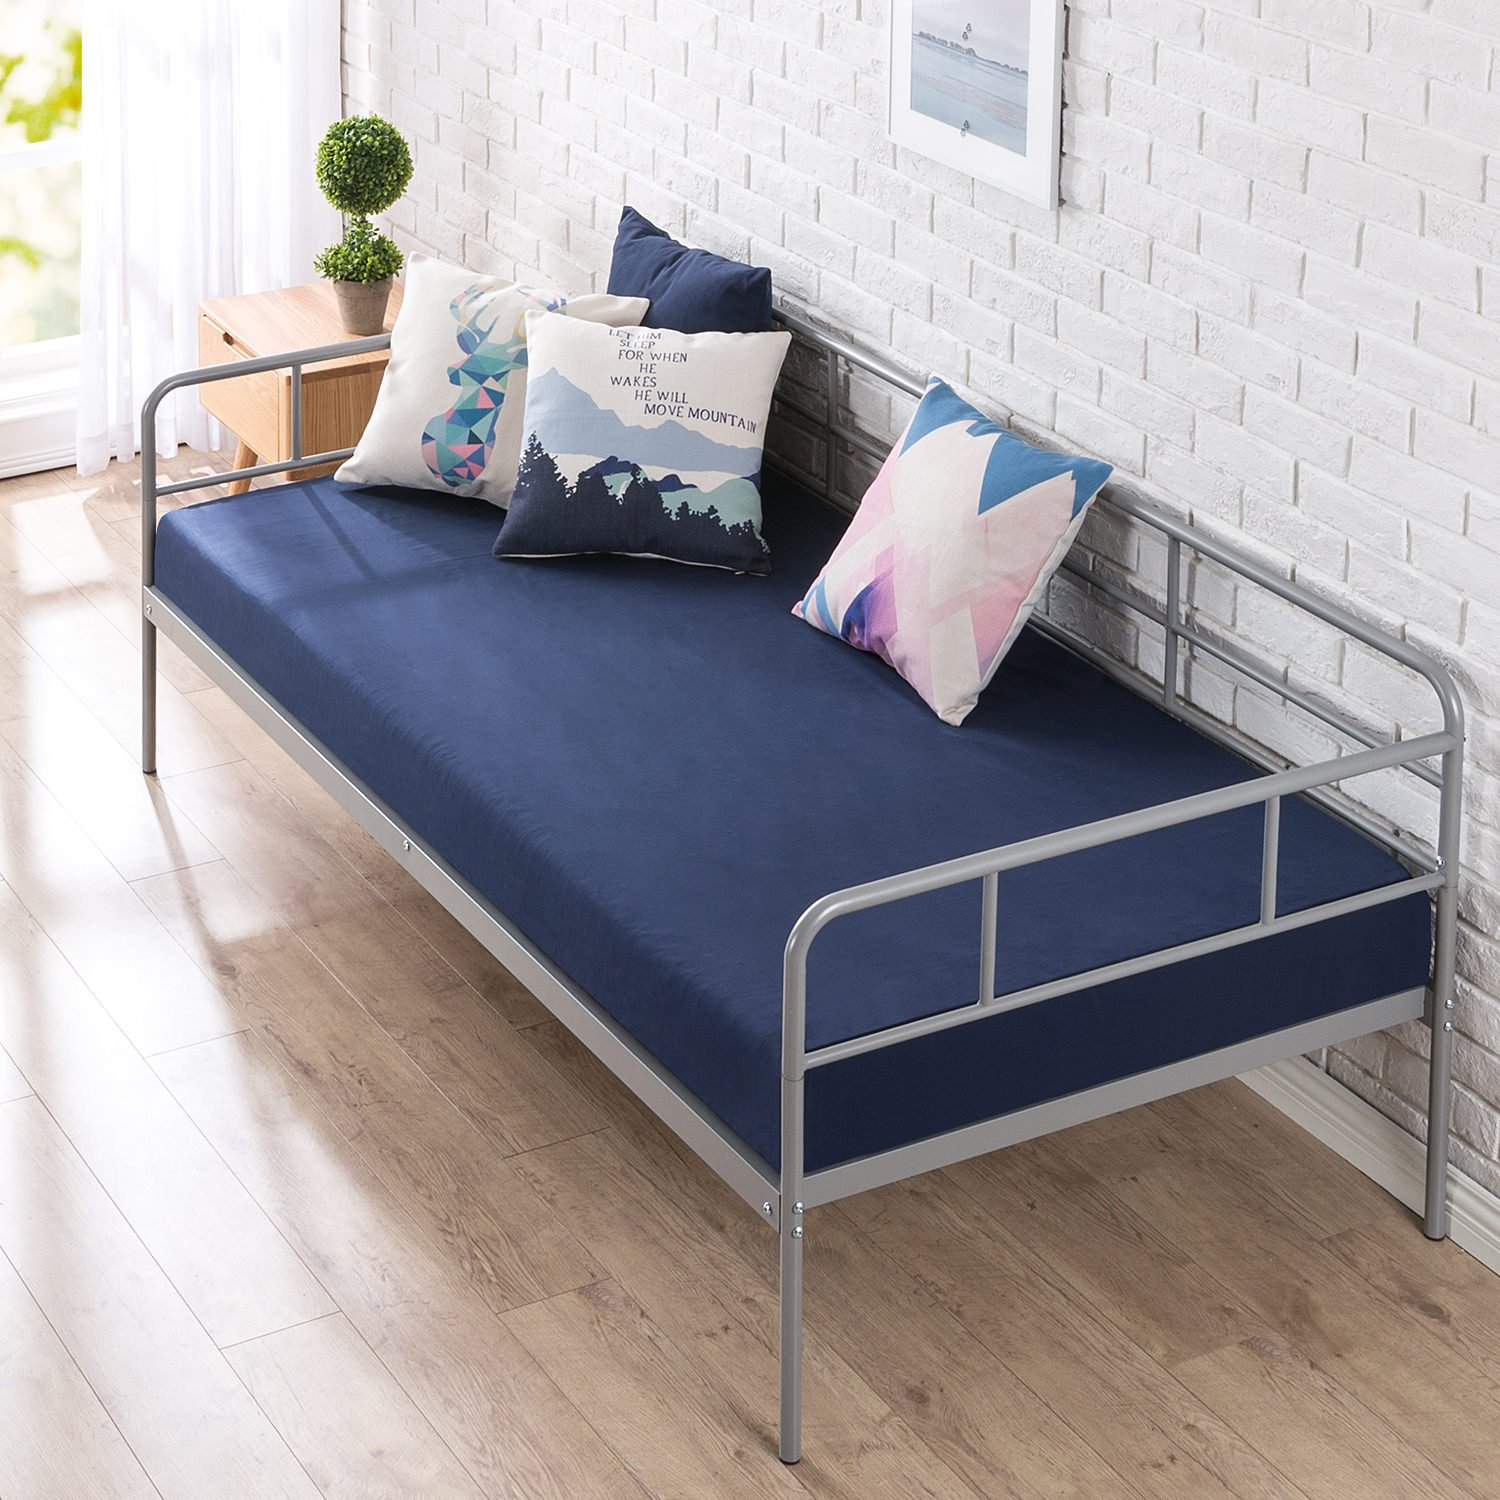 Zinus Leo 39 Inch Twin Daybed Frame / Premium Steel Slat Support by Zinus